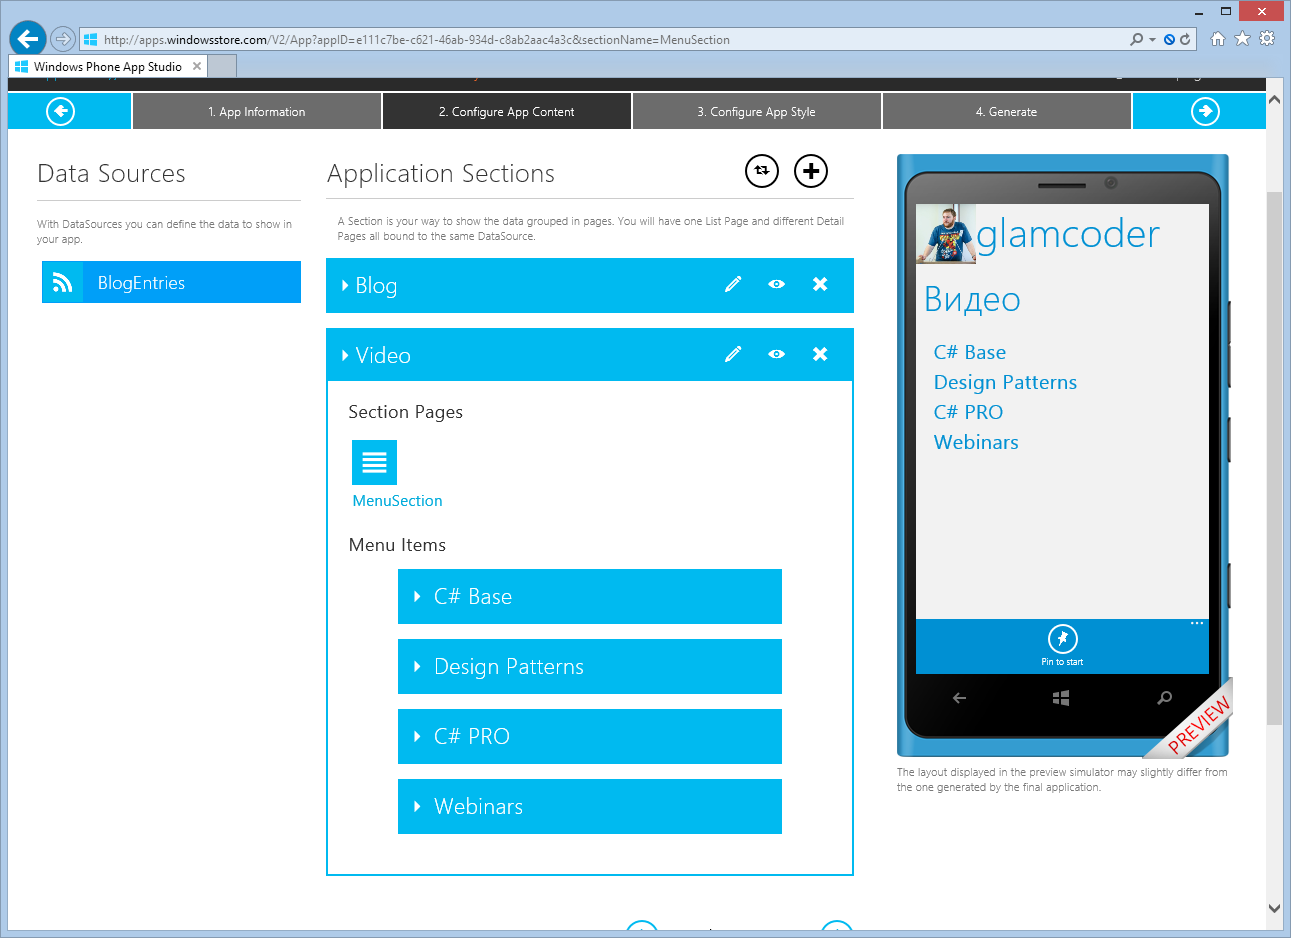 Windows Phone App Studio Menu Section